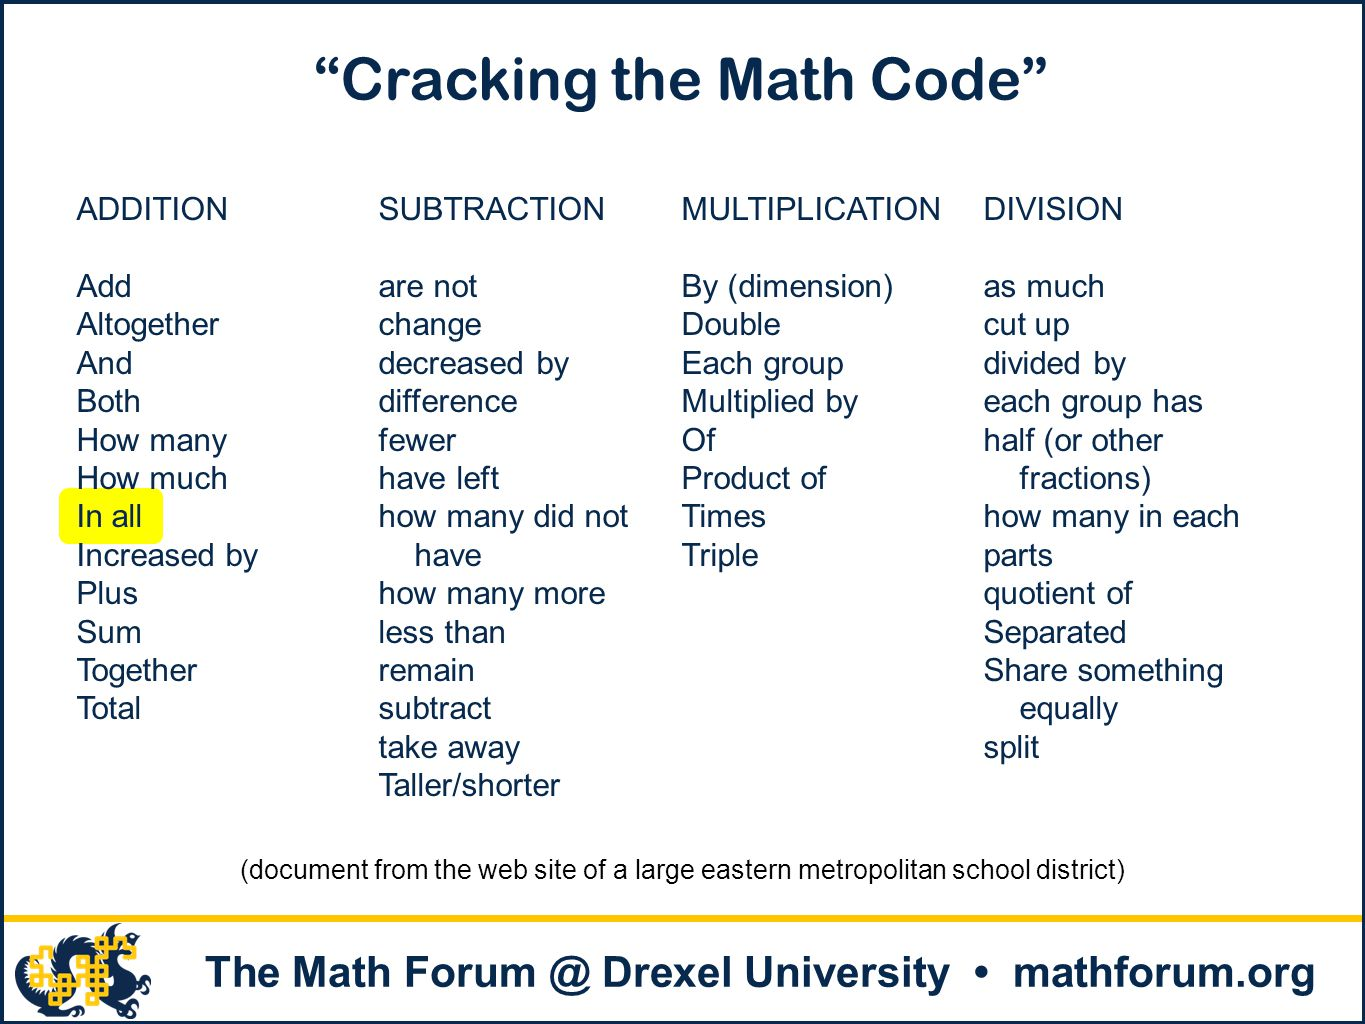 Cracking the Math Code